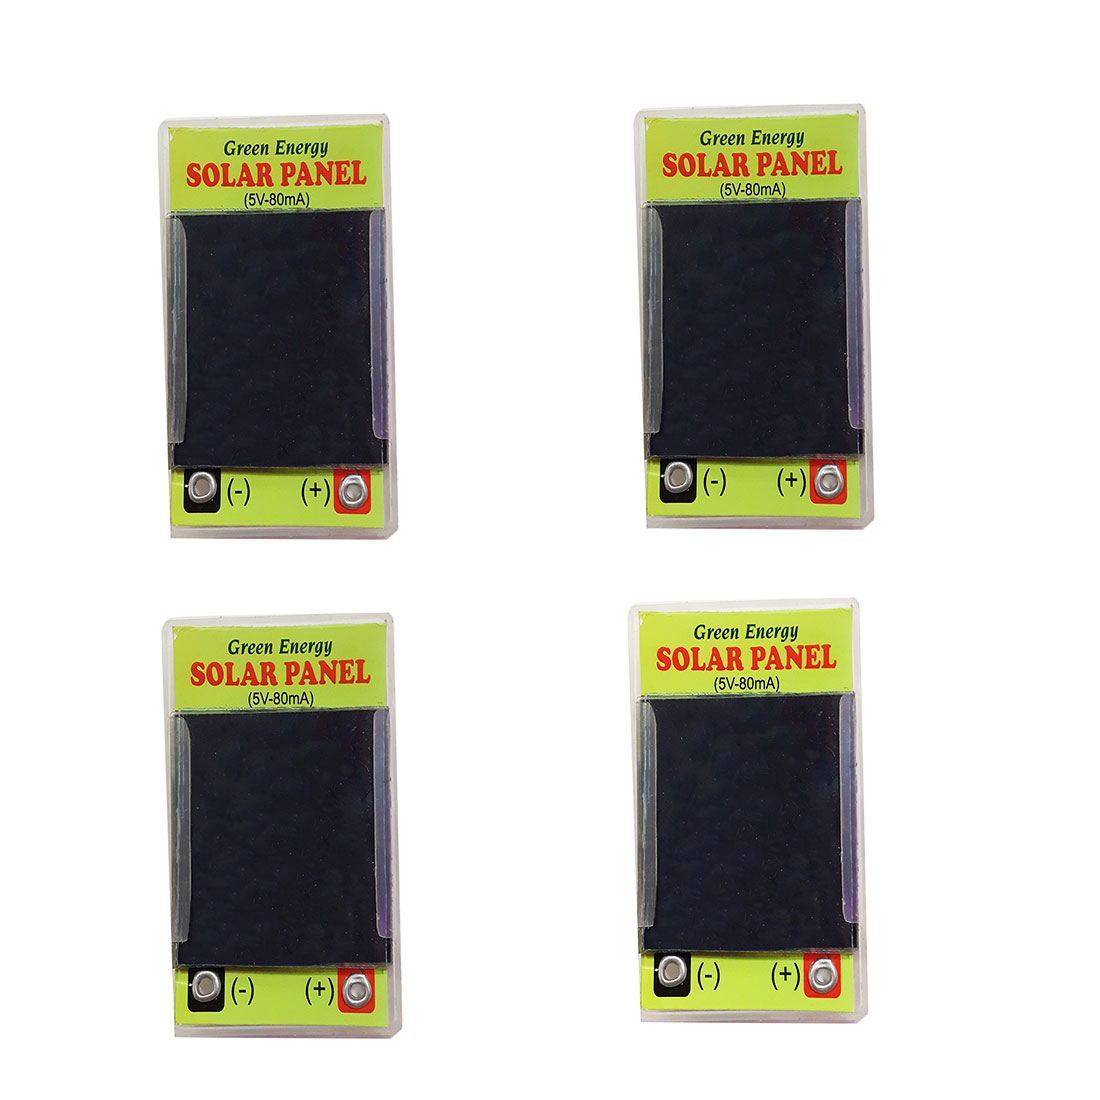 SC - 13 Melody's Mini Solar Panel 5V-80mA Rating For Science Projects Application.Set Of 4